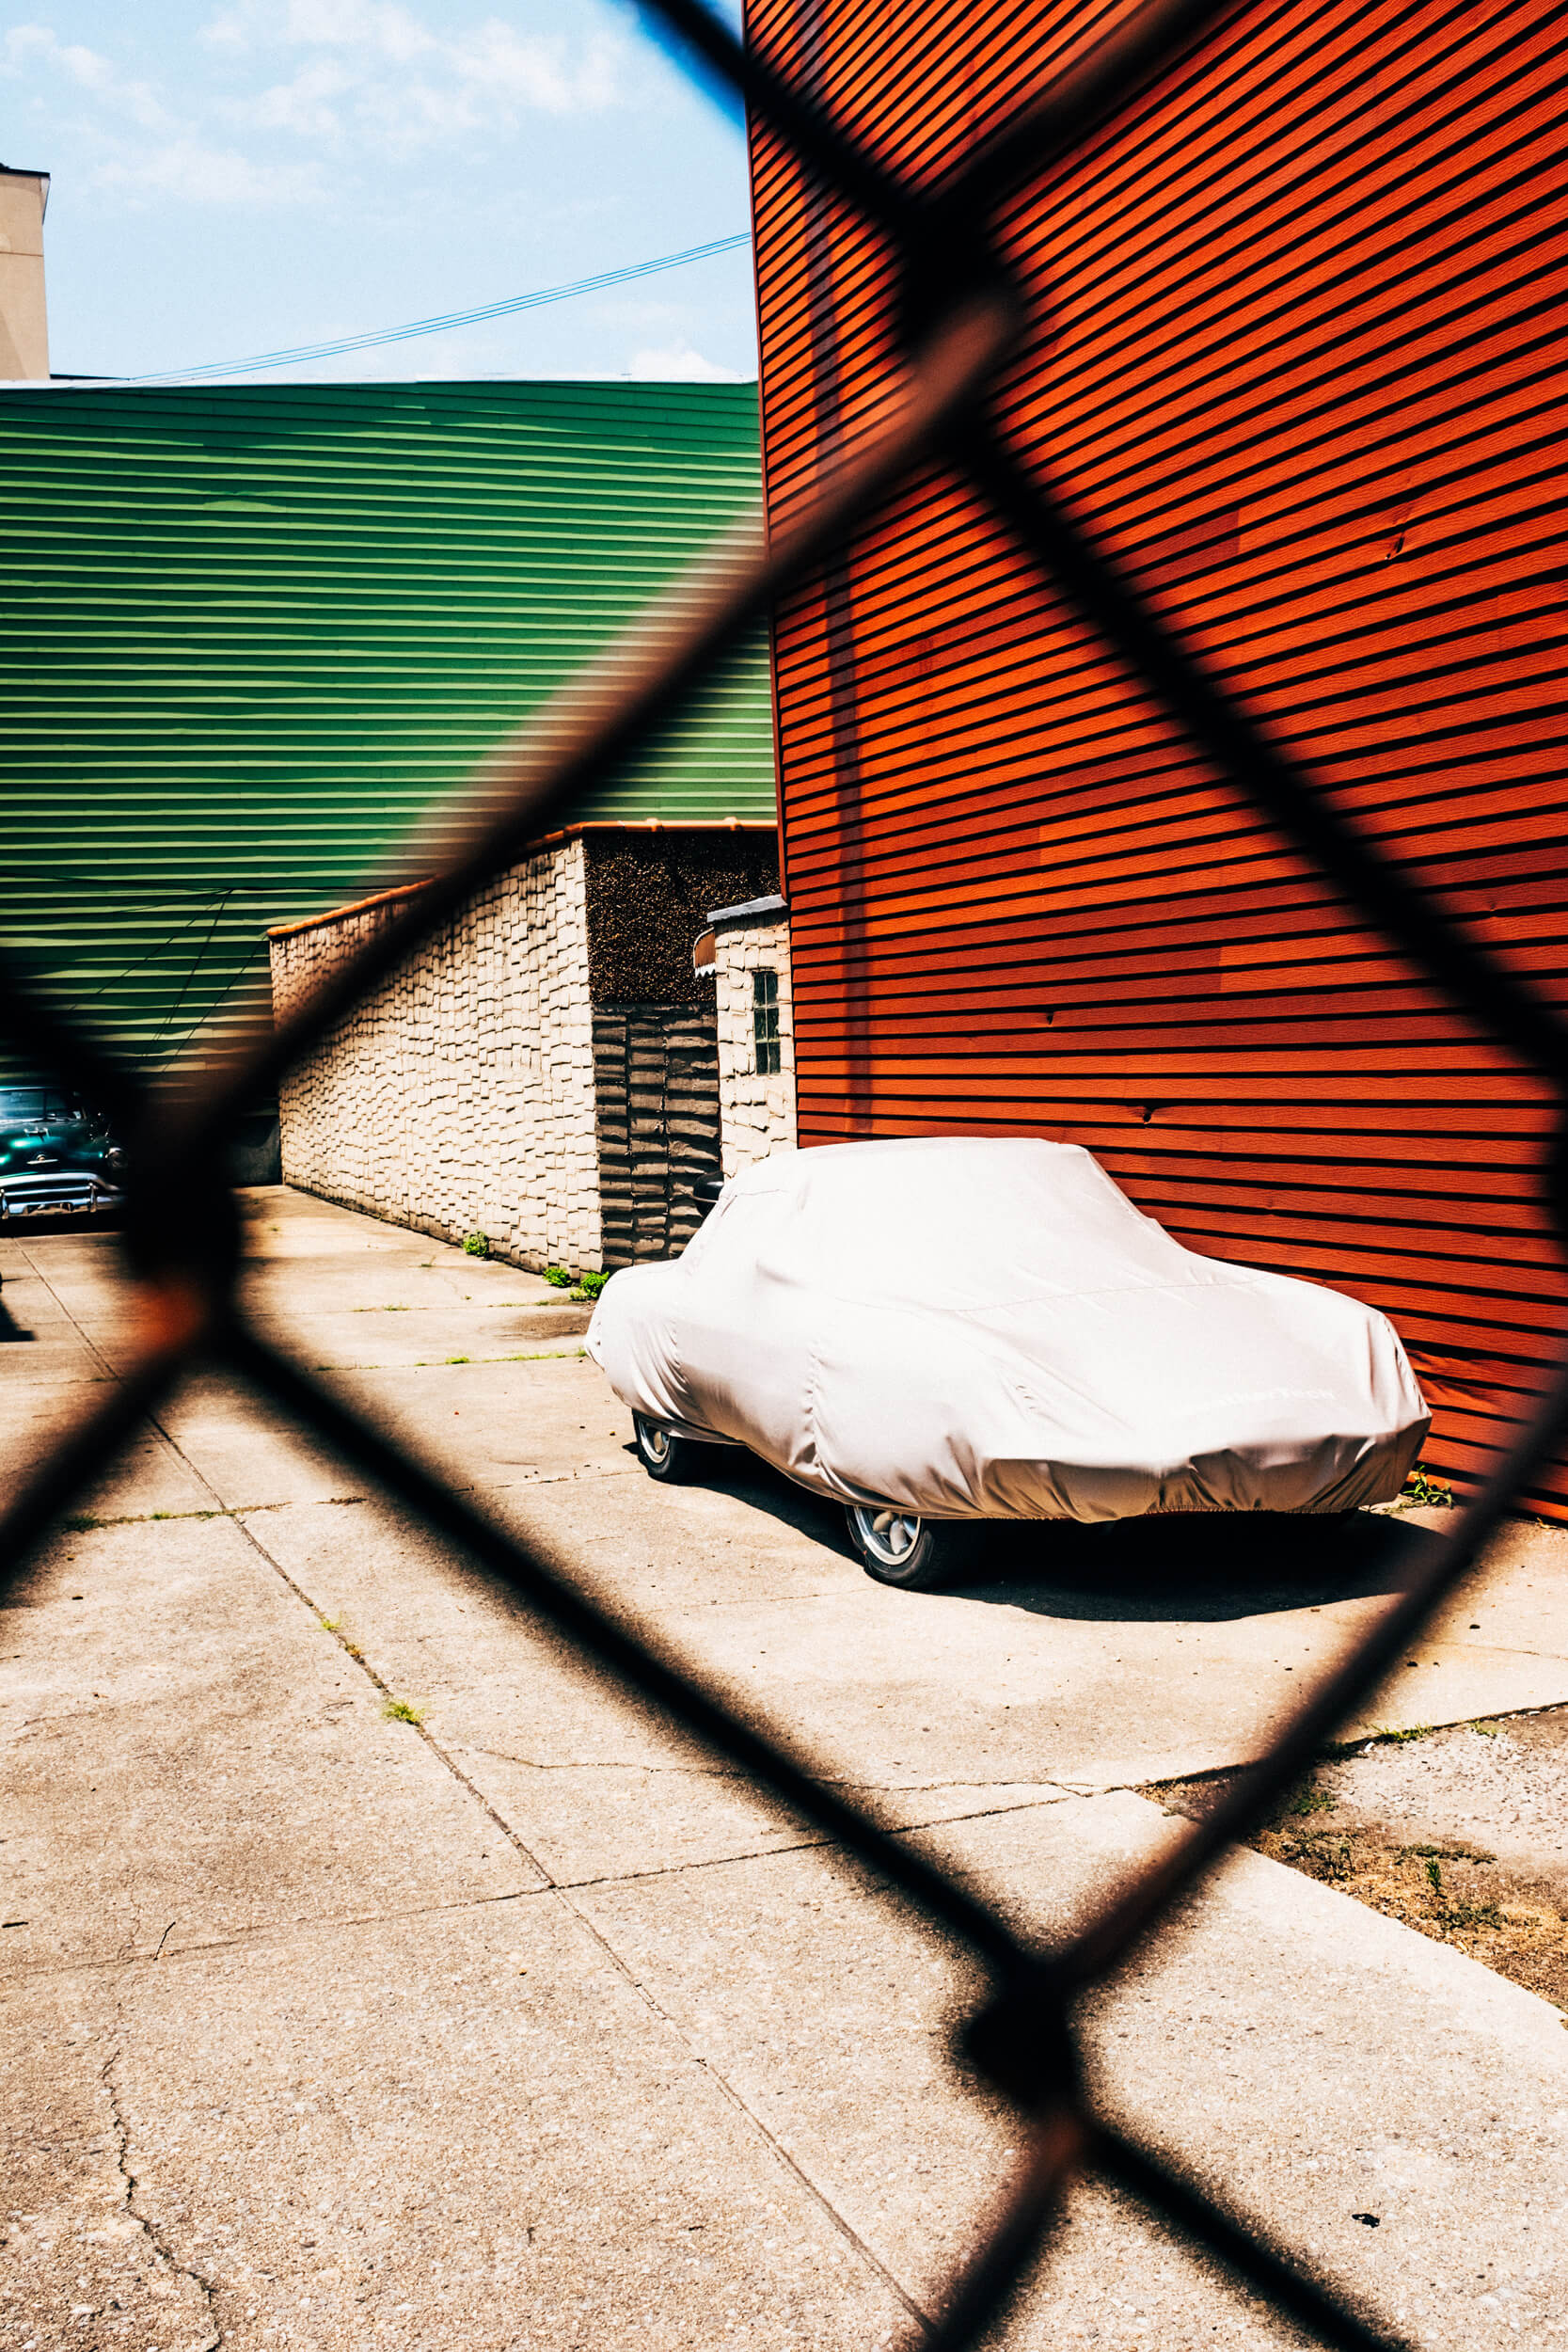 jm-saponaro-sleeping-cars-brooklyn.jpg